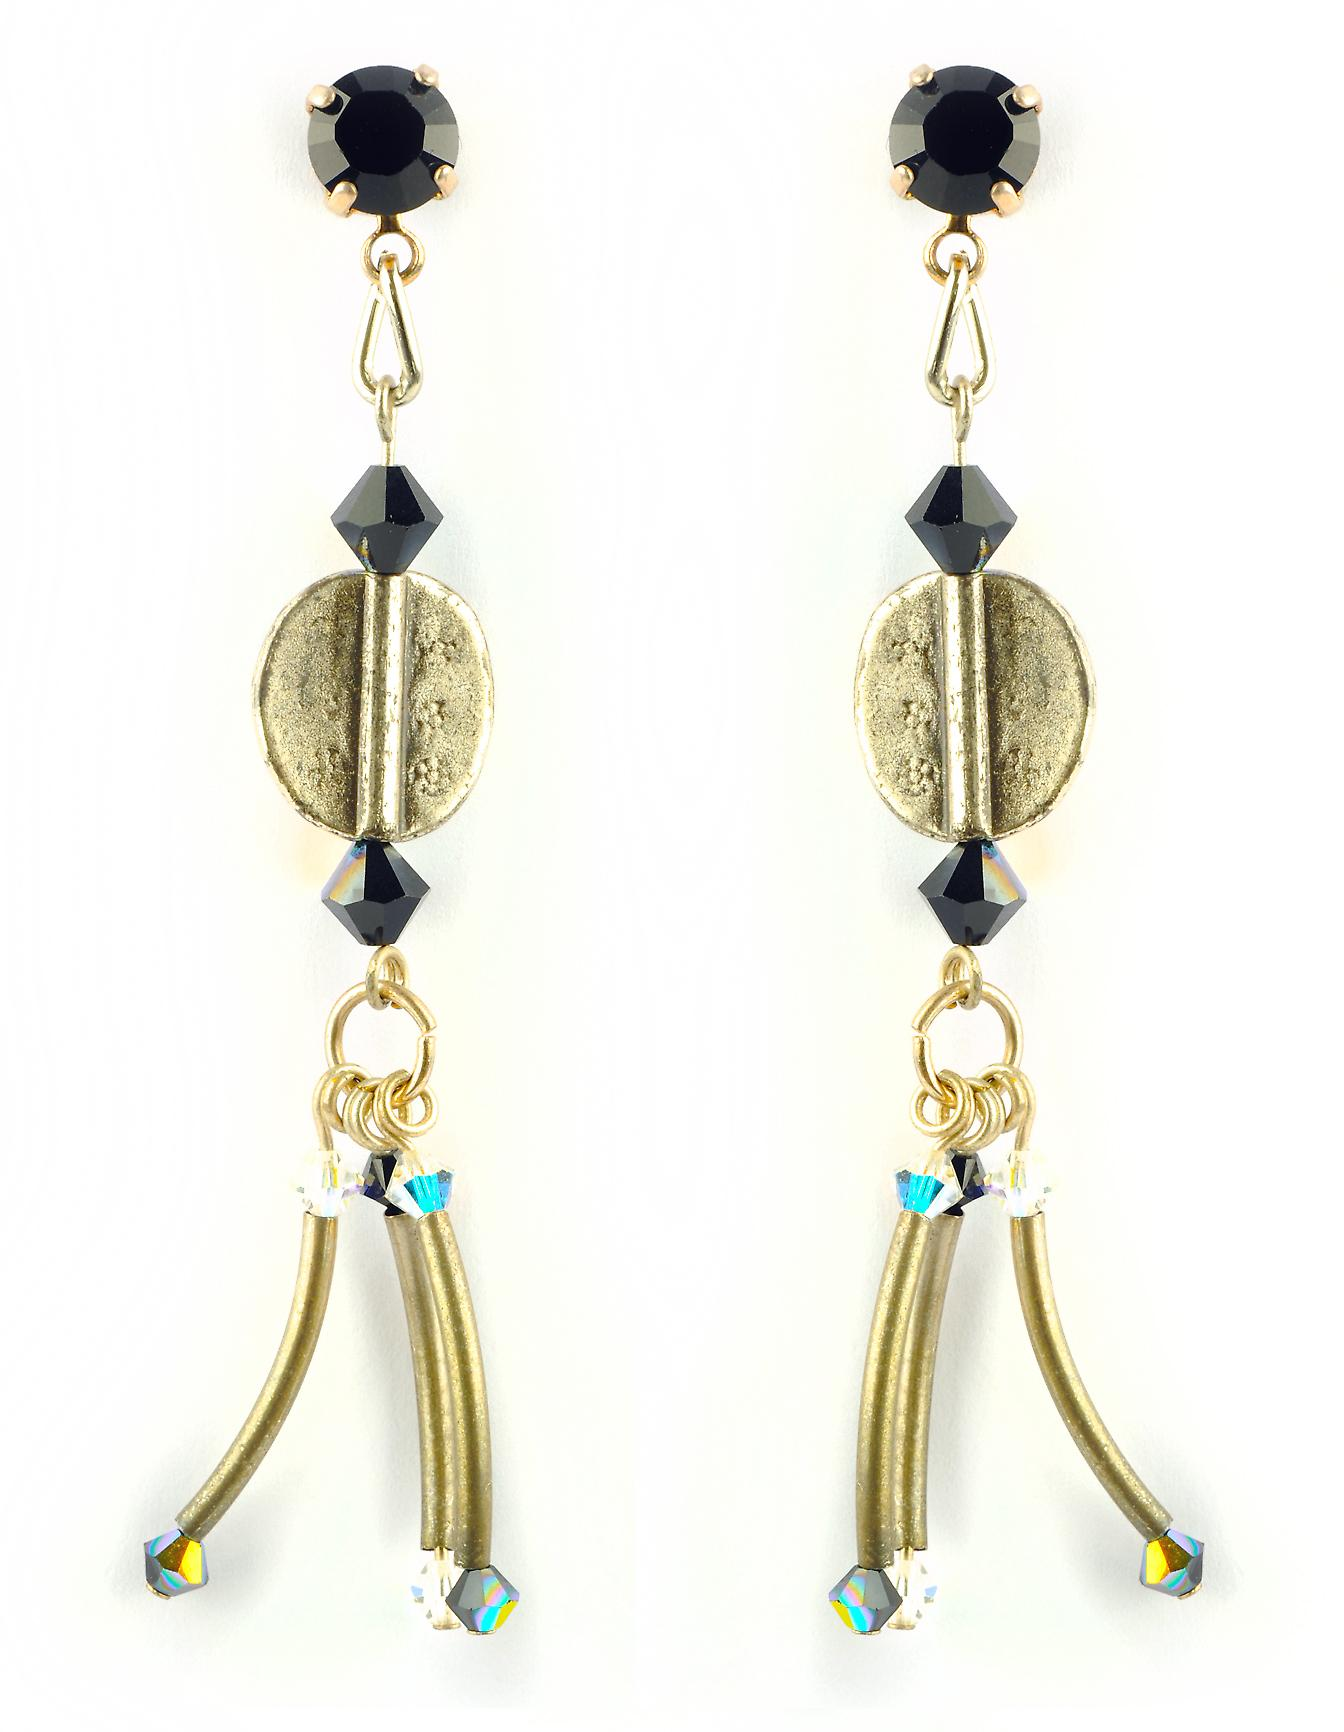 Waooh - jewelry - WJ0698 - earrings with Rhinestone Swarovski black blue - silver Elements